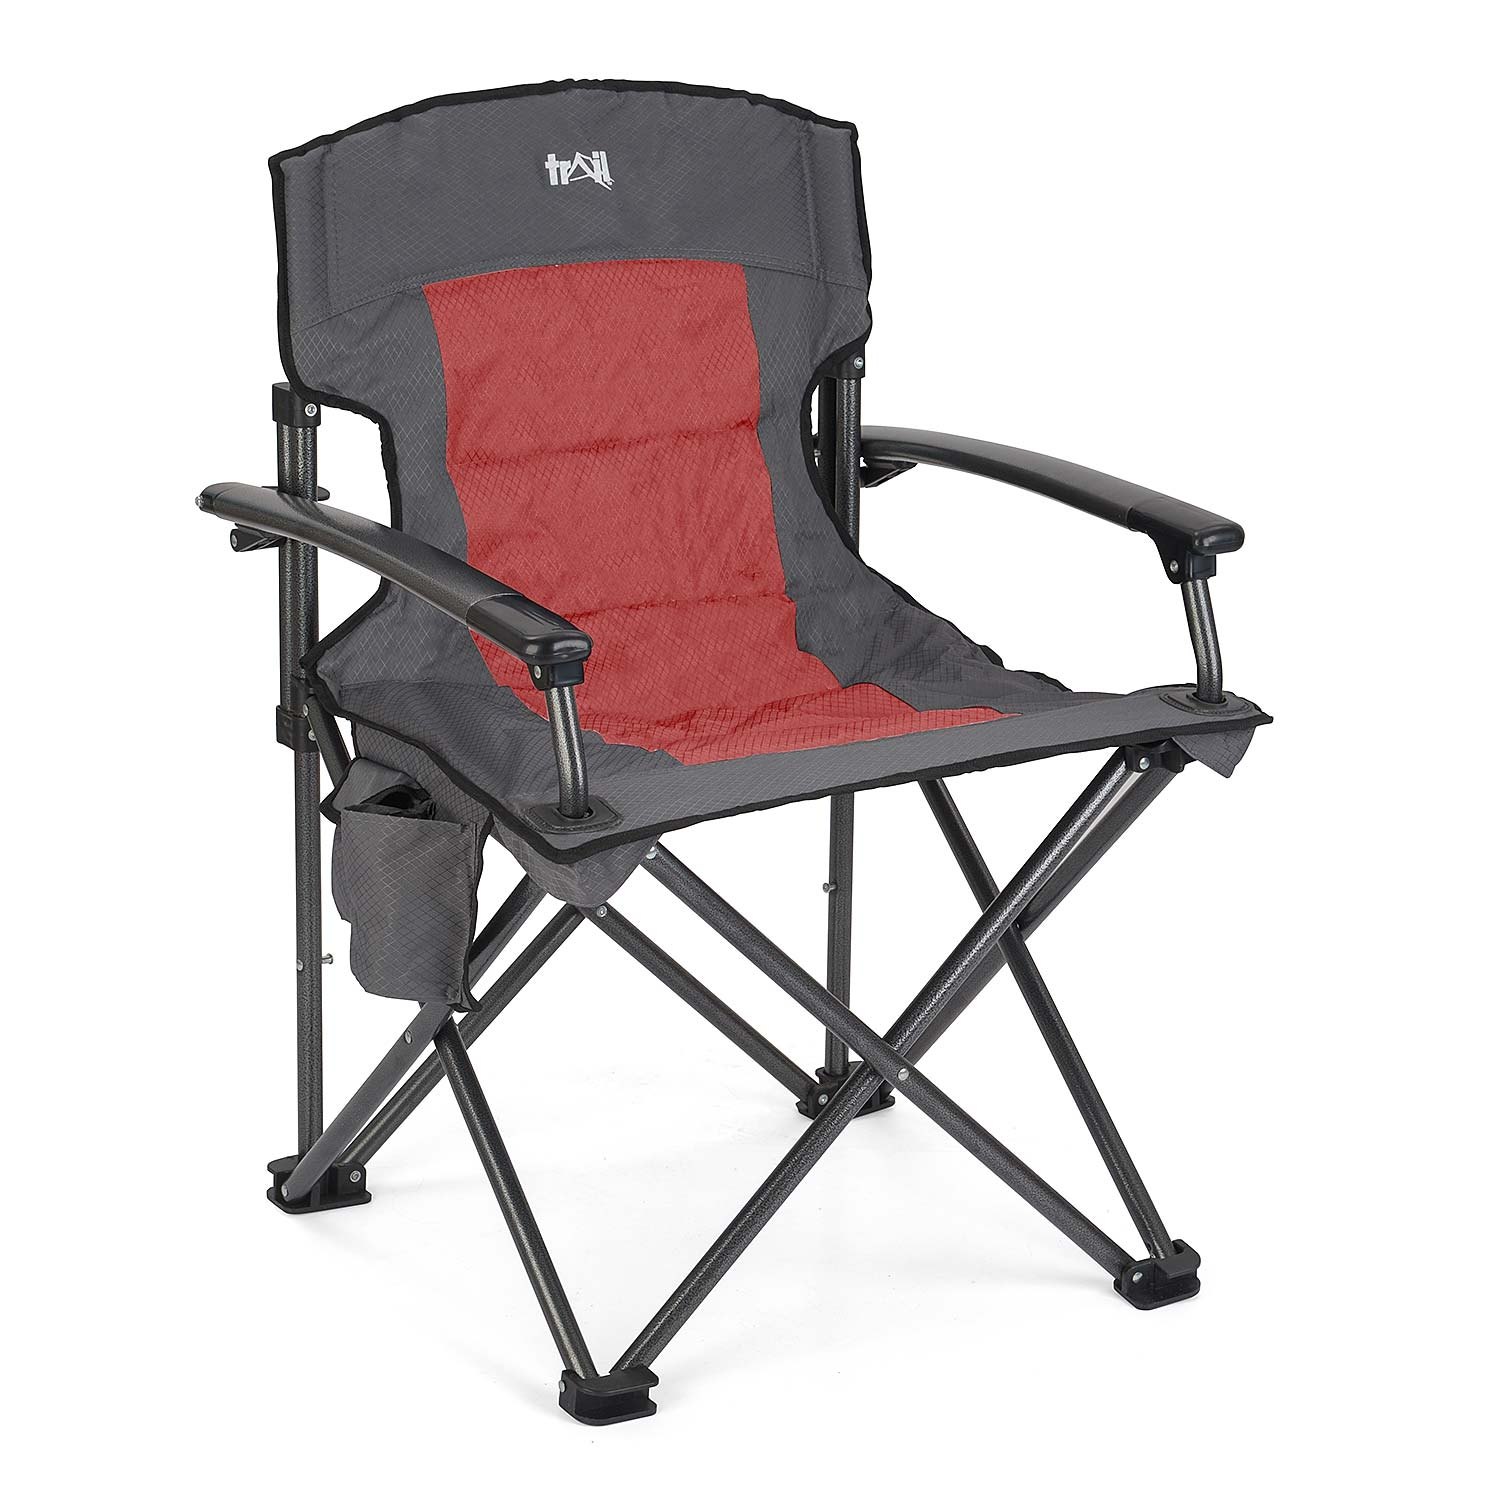 Wondrous Details About Folding Camping Chair Lightweight Portable Luxury Double Padded Festival Fishing Pabps2019 Chair Design Images Pabps2019Com